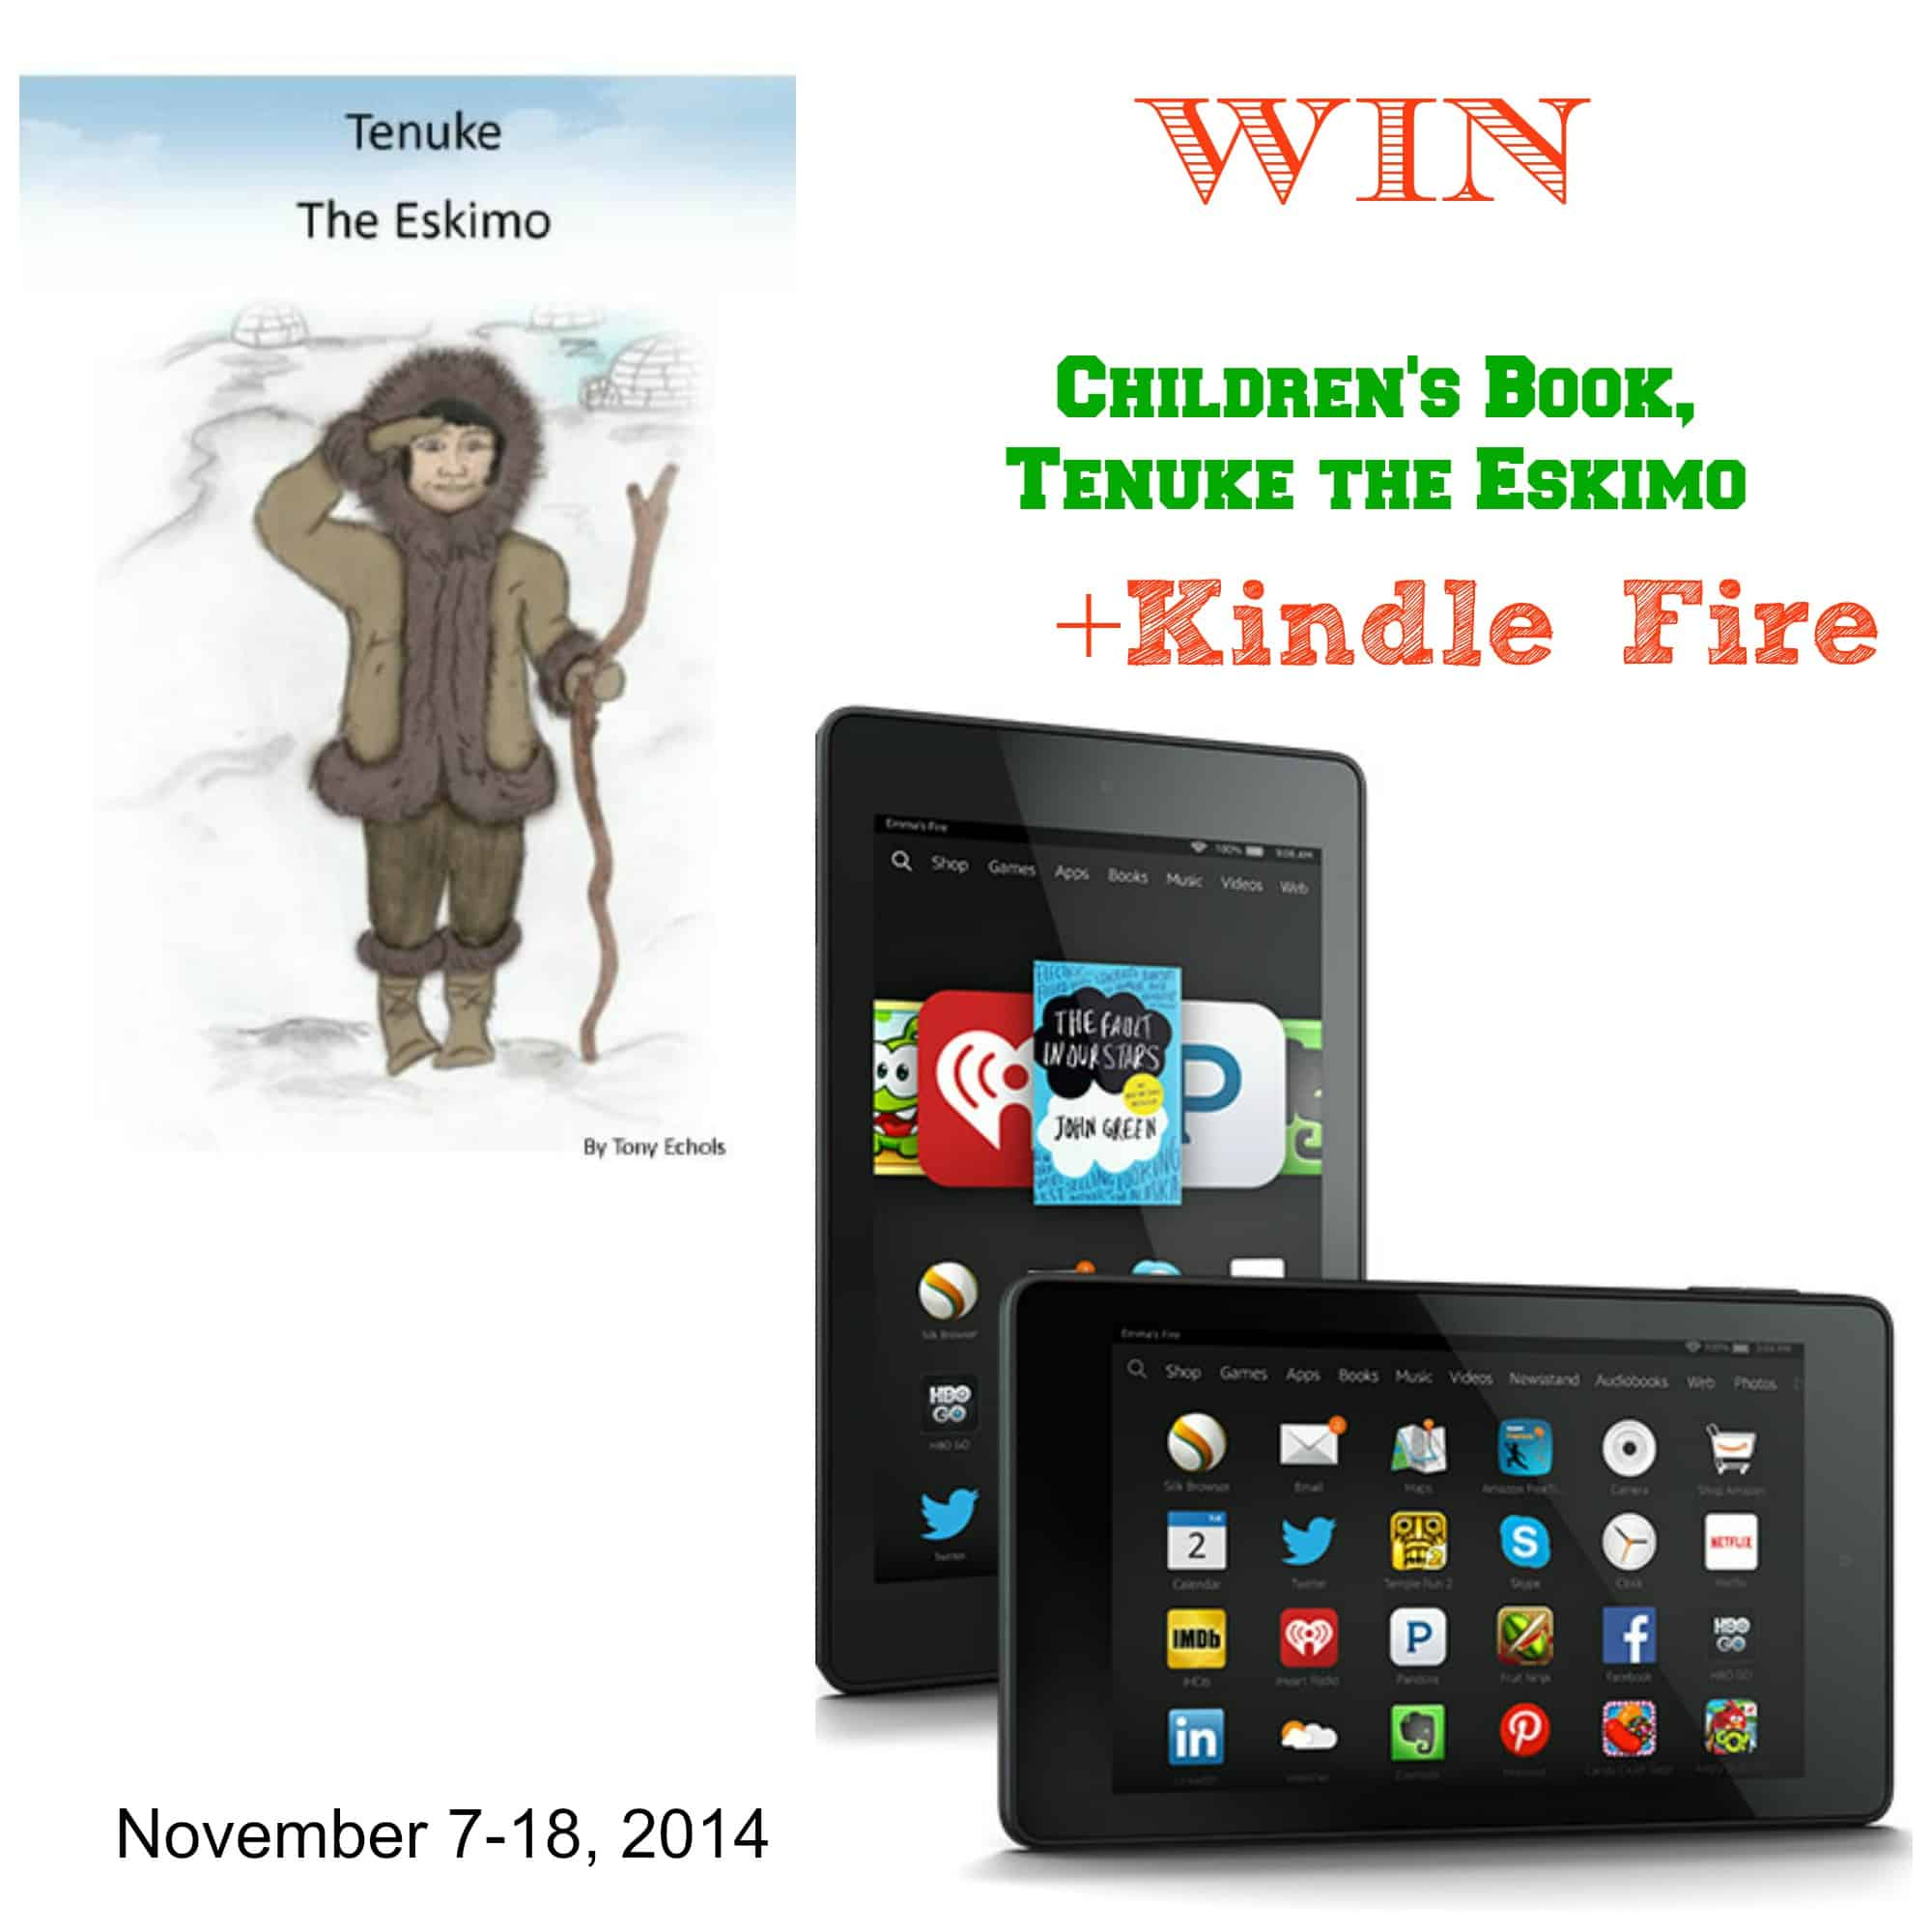 Tenuke the Eskimo and Kindle Fire Giveaway